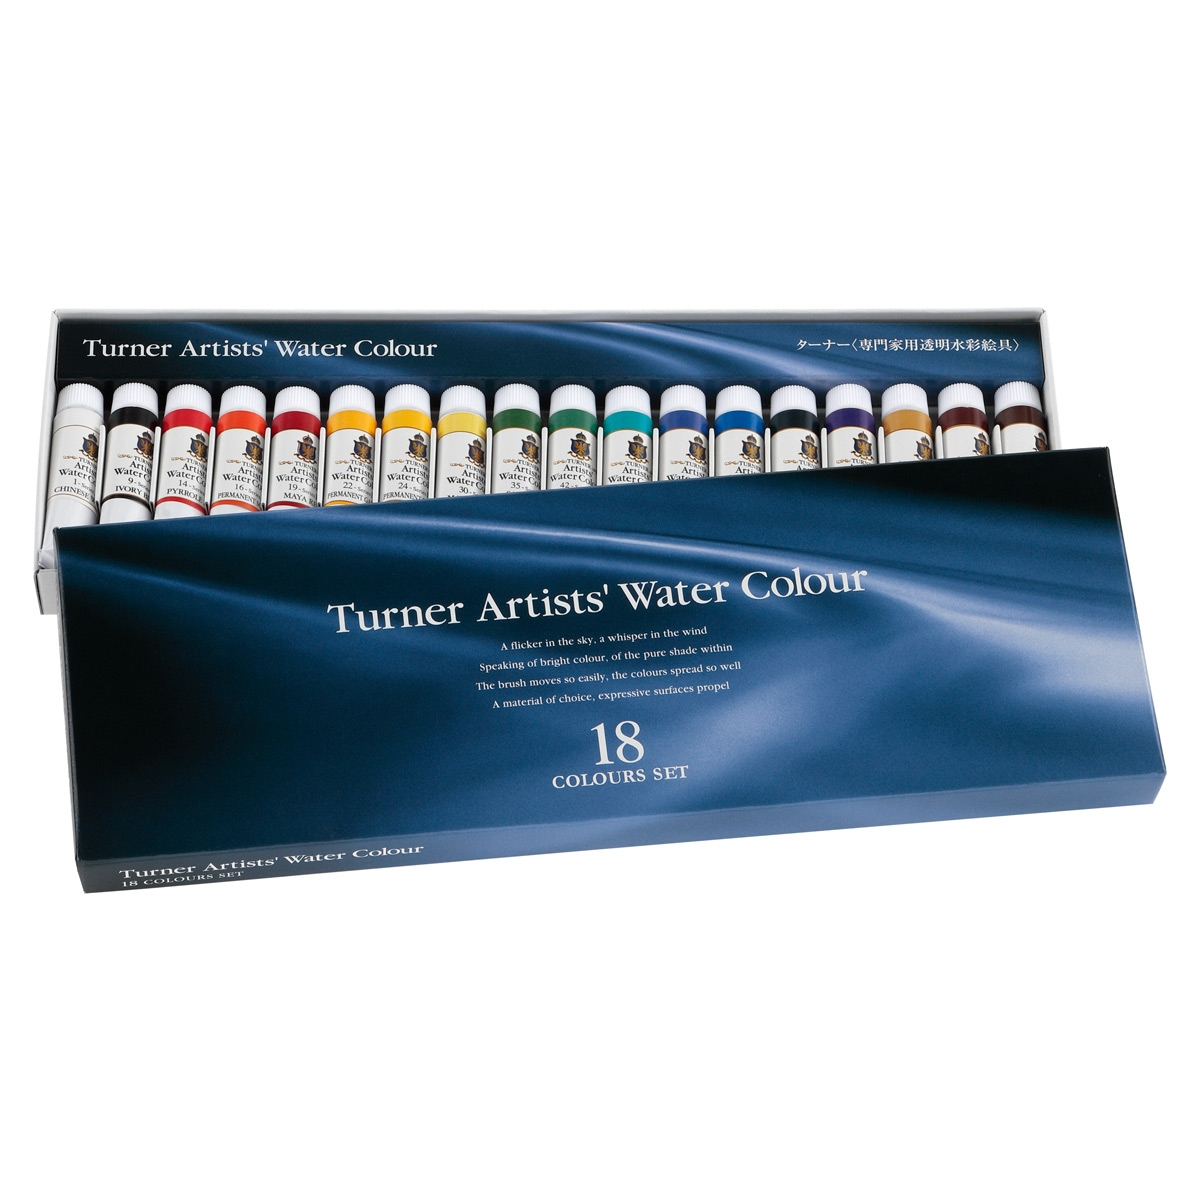 Turner Concentrated Professional Artists' Watercolor Set of 18